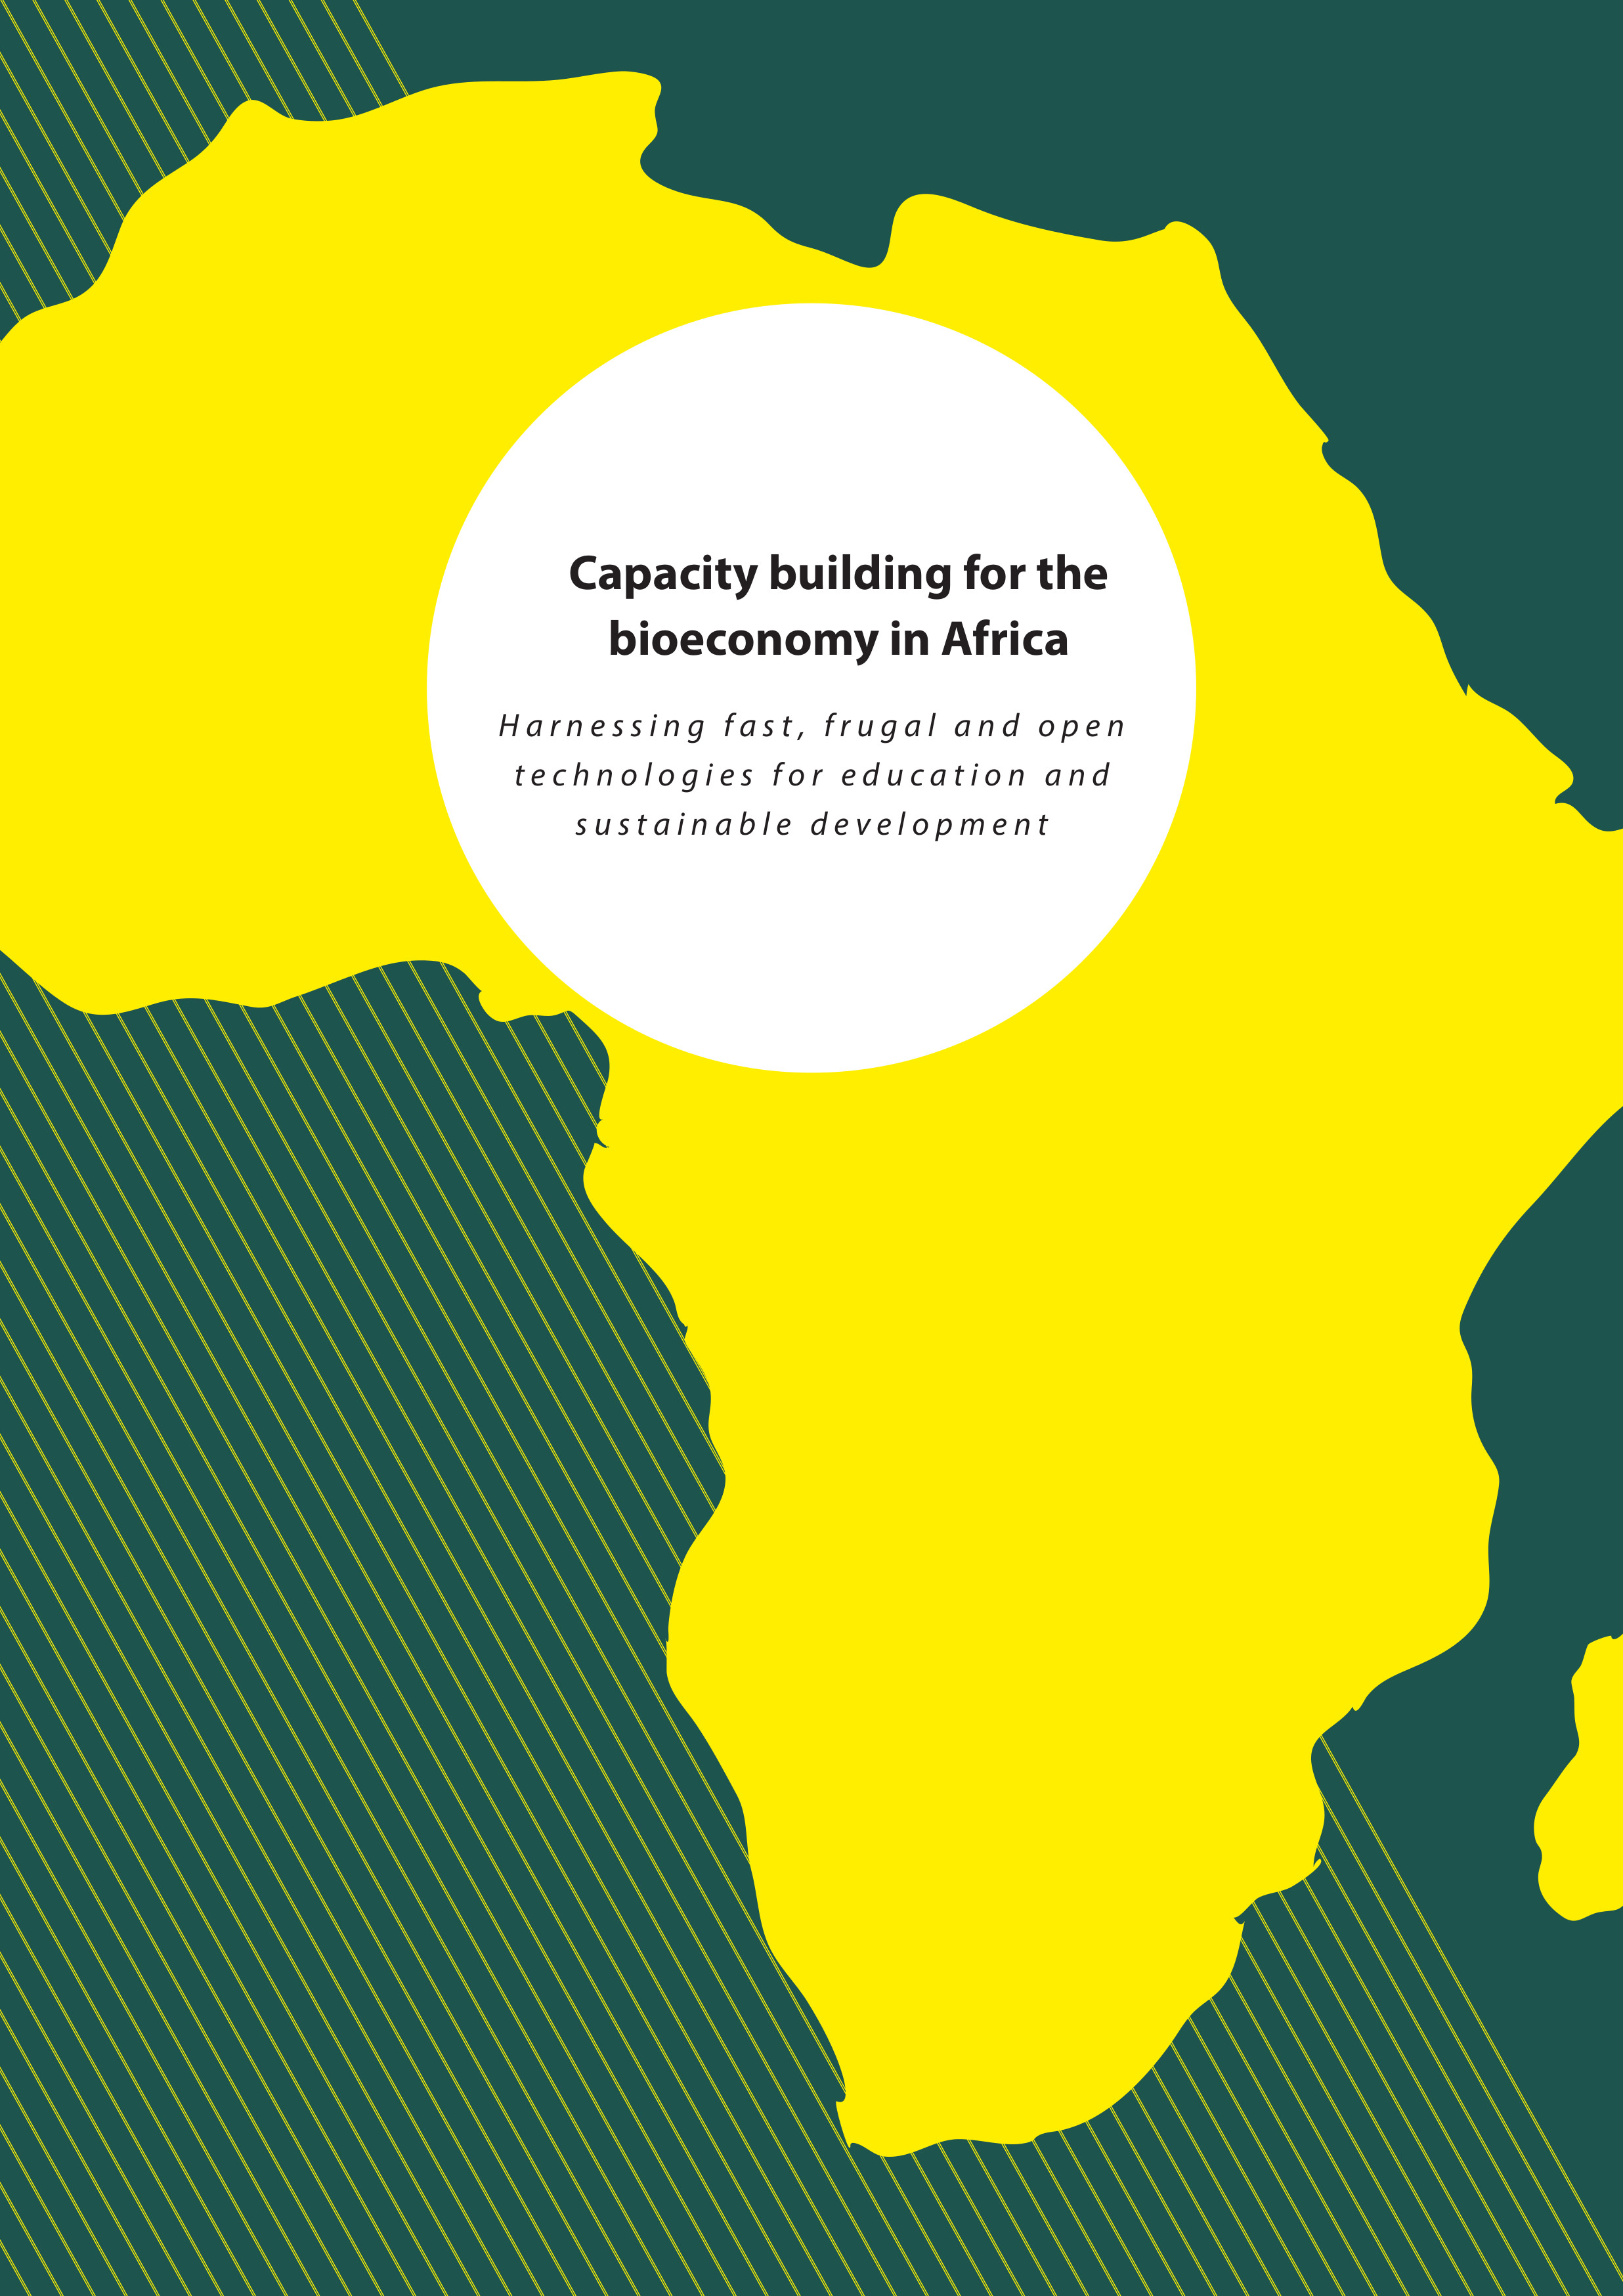 Capacity Building for the Bioeconomy in Africa